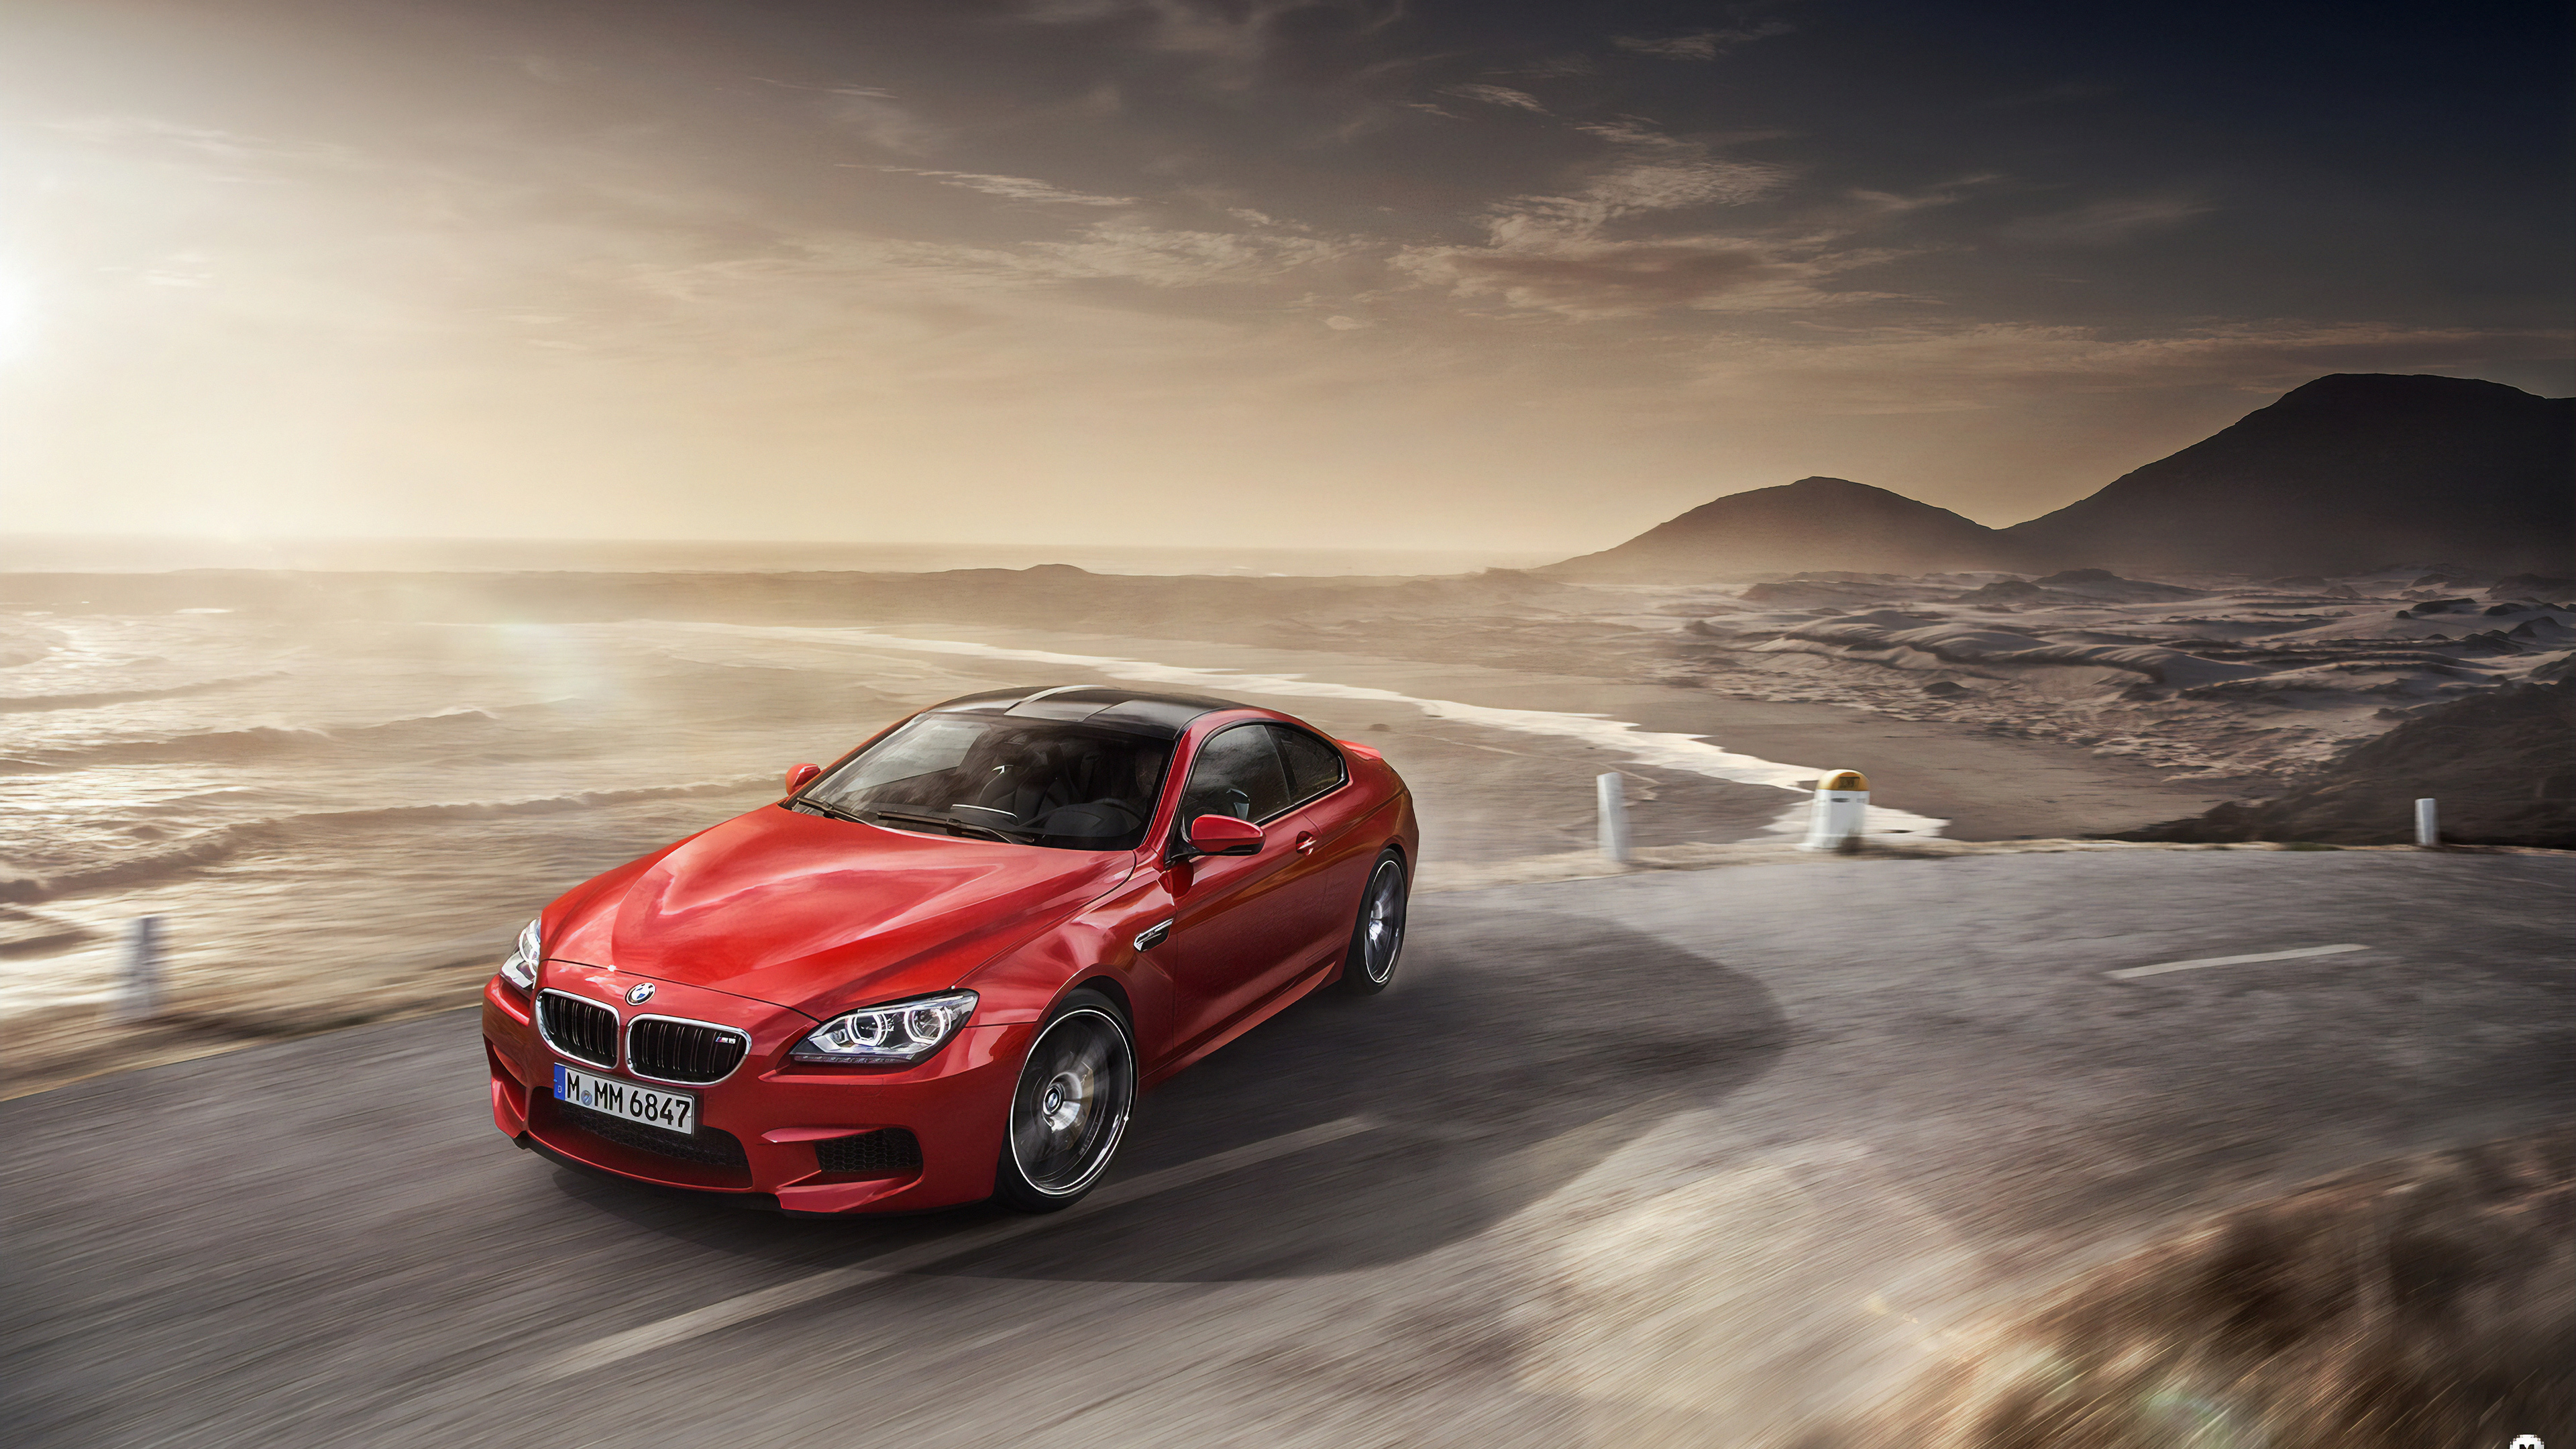 bmw m6 1565054847 - Bmw M6 - hd-wallpapers, cars wallpapers, bmw wallpapers, bmw m6 wallpapers, behance wallpapers, 4k-wallpapers